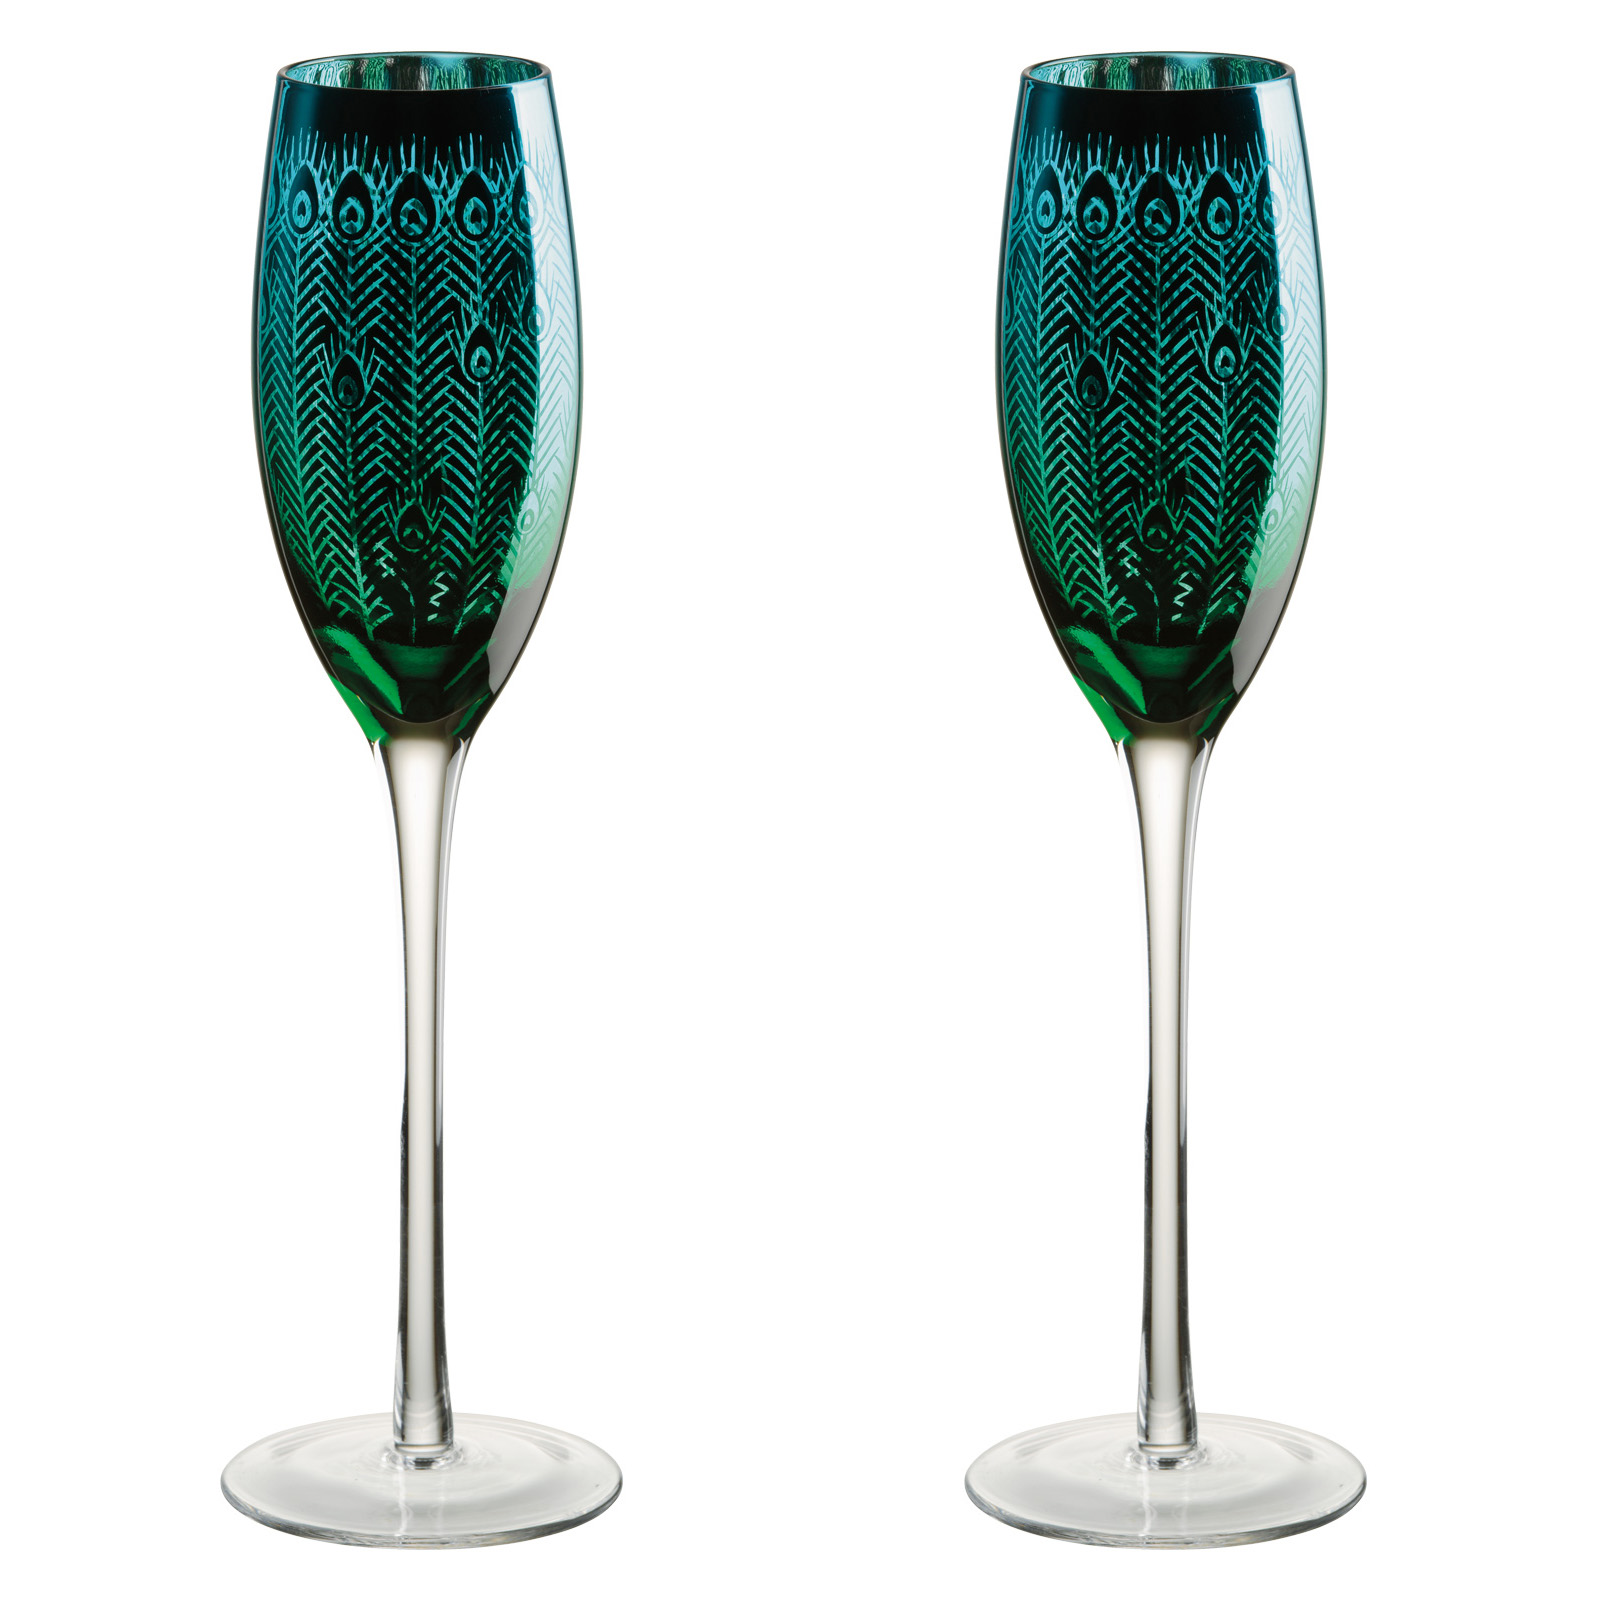 Set of 2 Peacock flutes by Artland